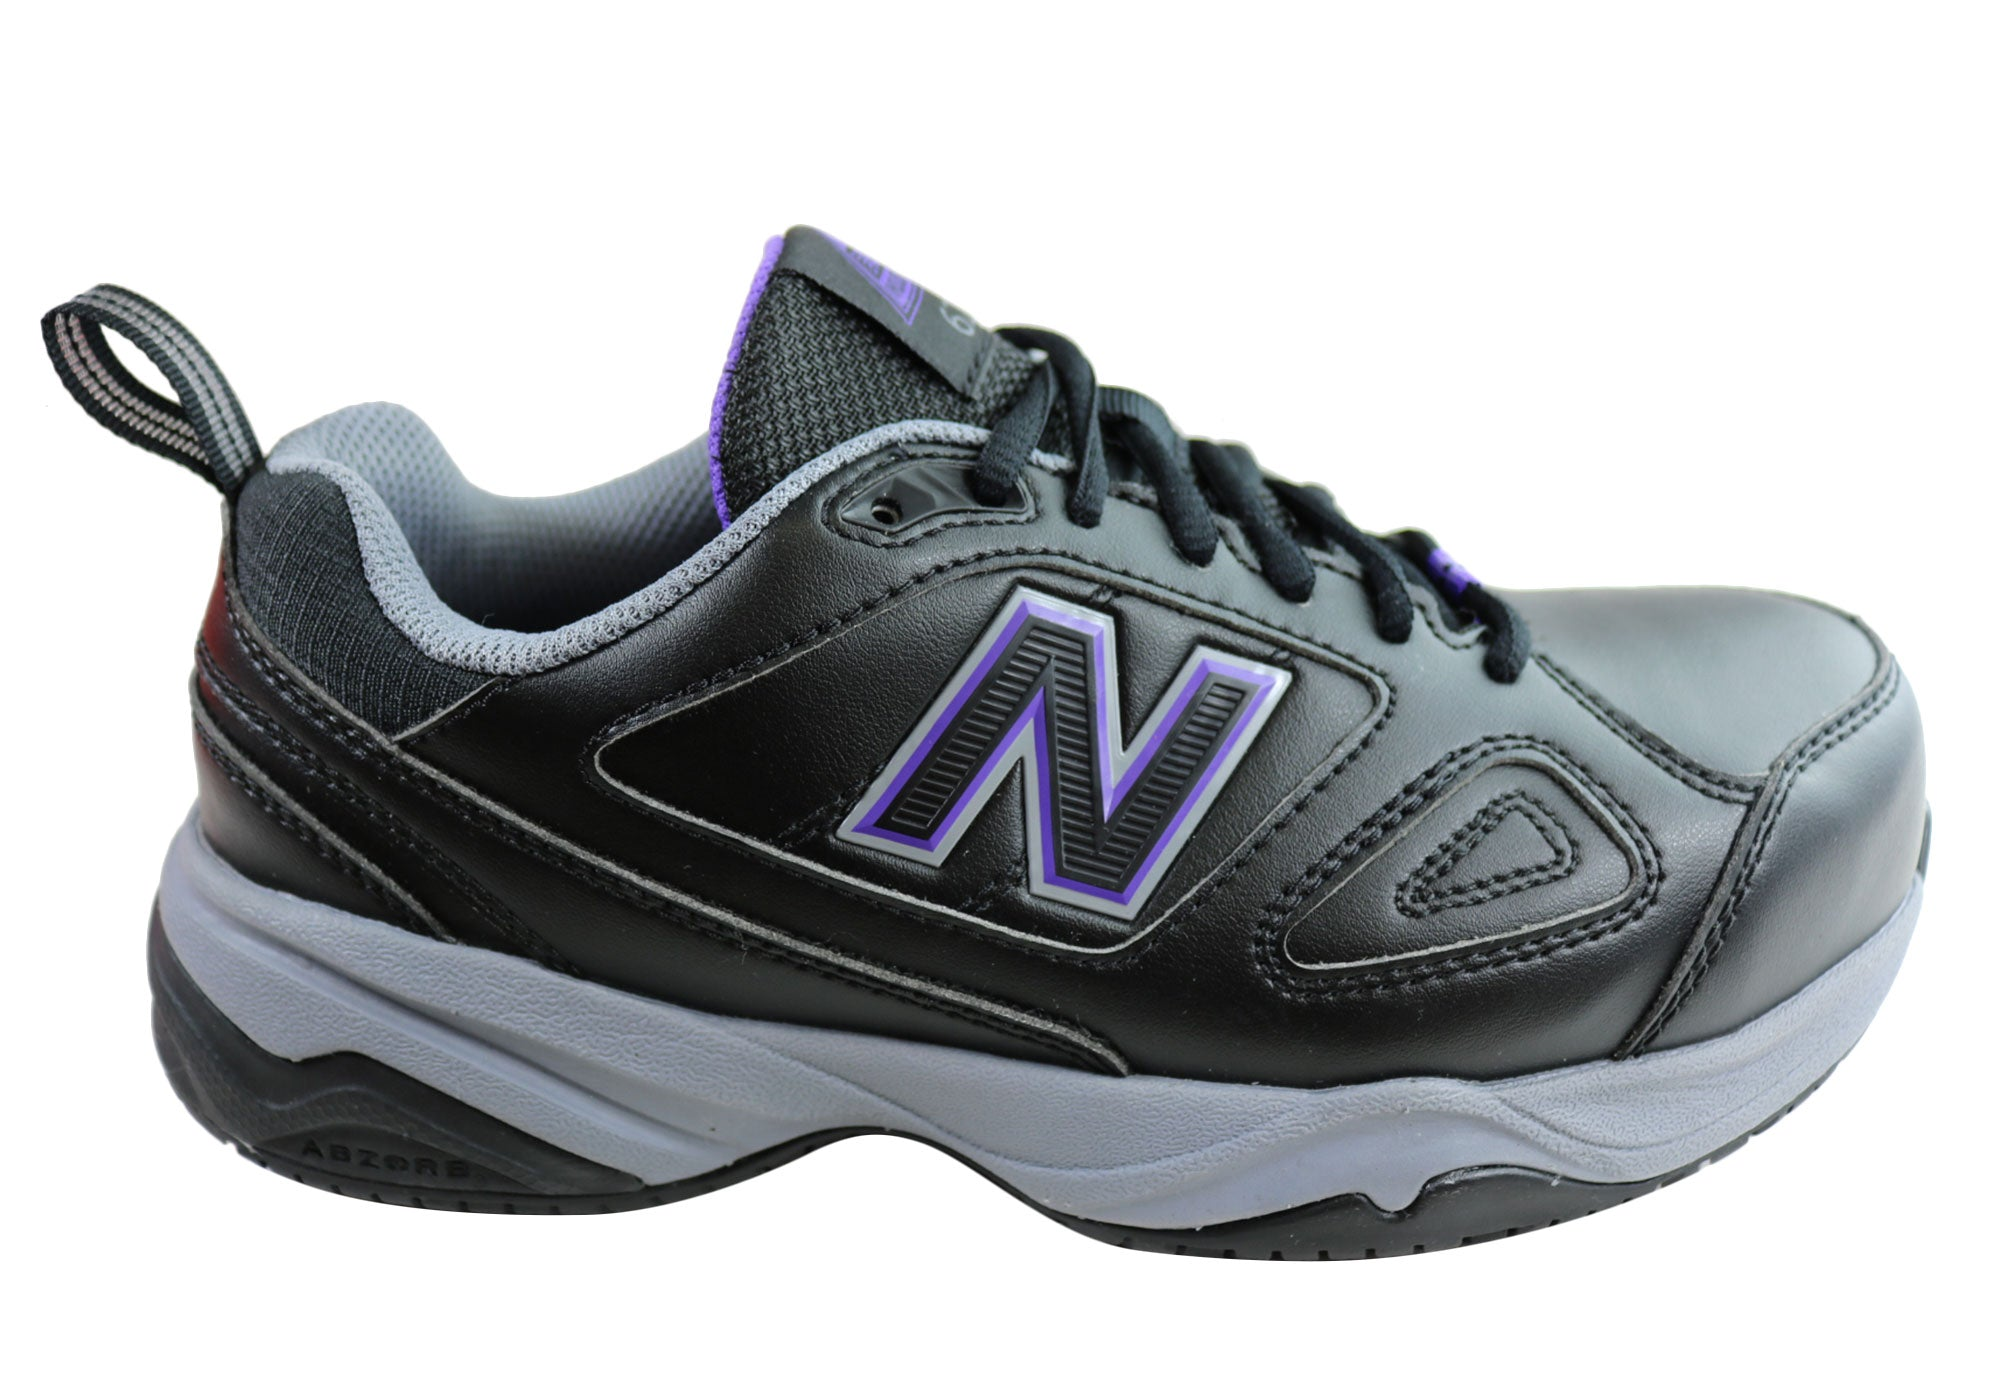 New Balance Womens 627 Wide Fit Steel Toe Slip Resistant Safety Shoes |  Brand House Direct